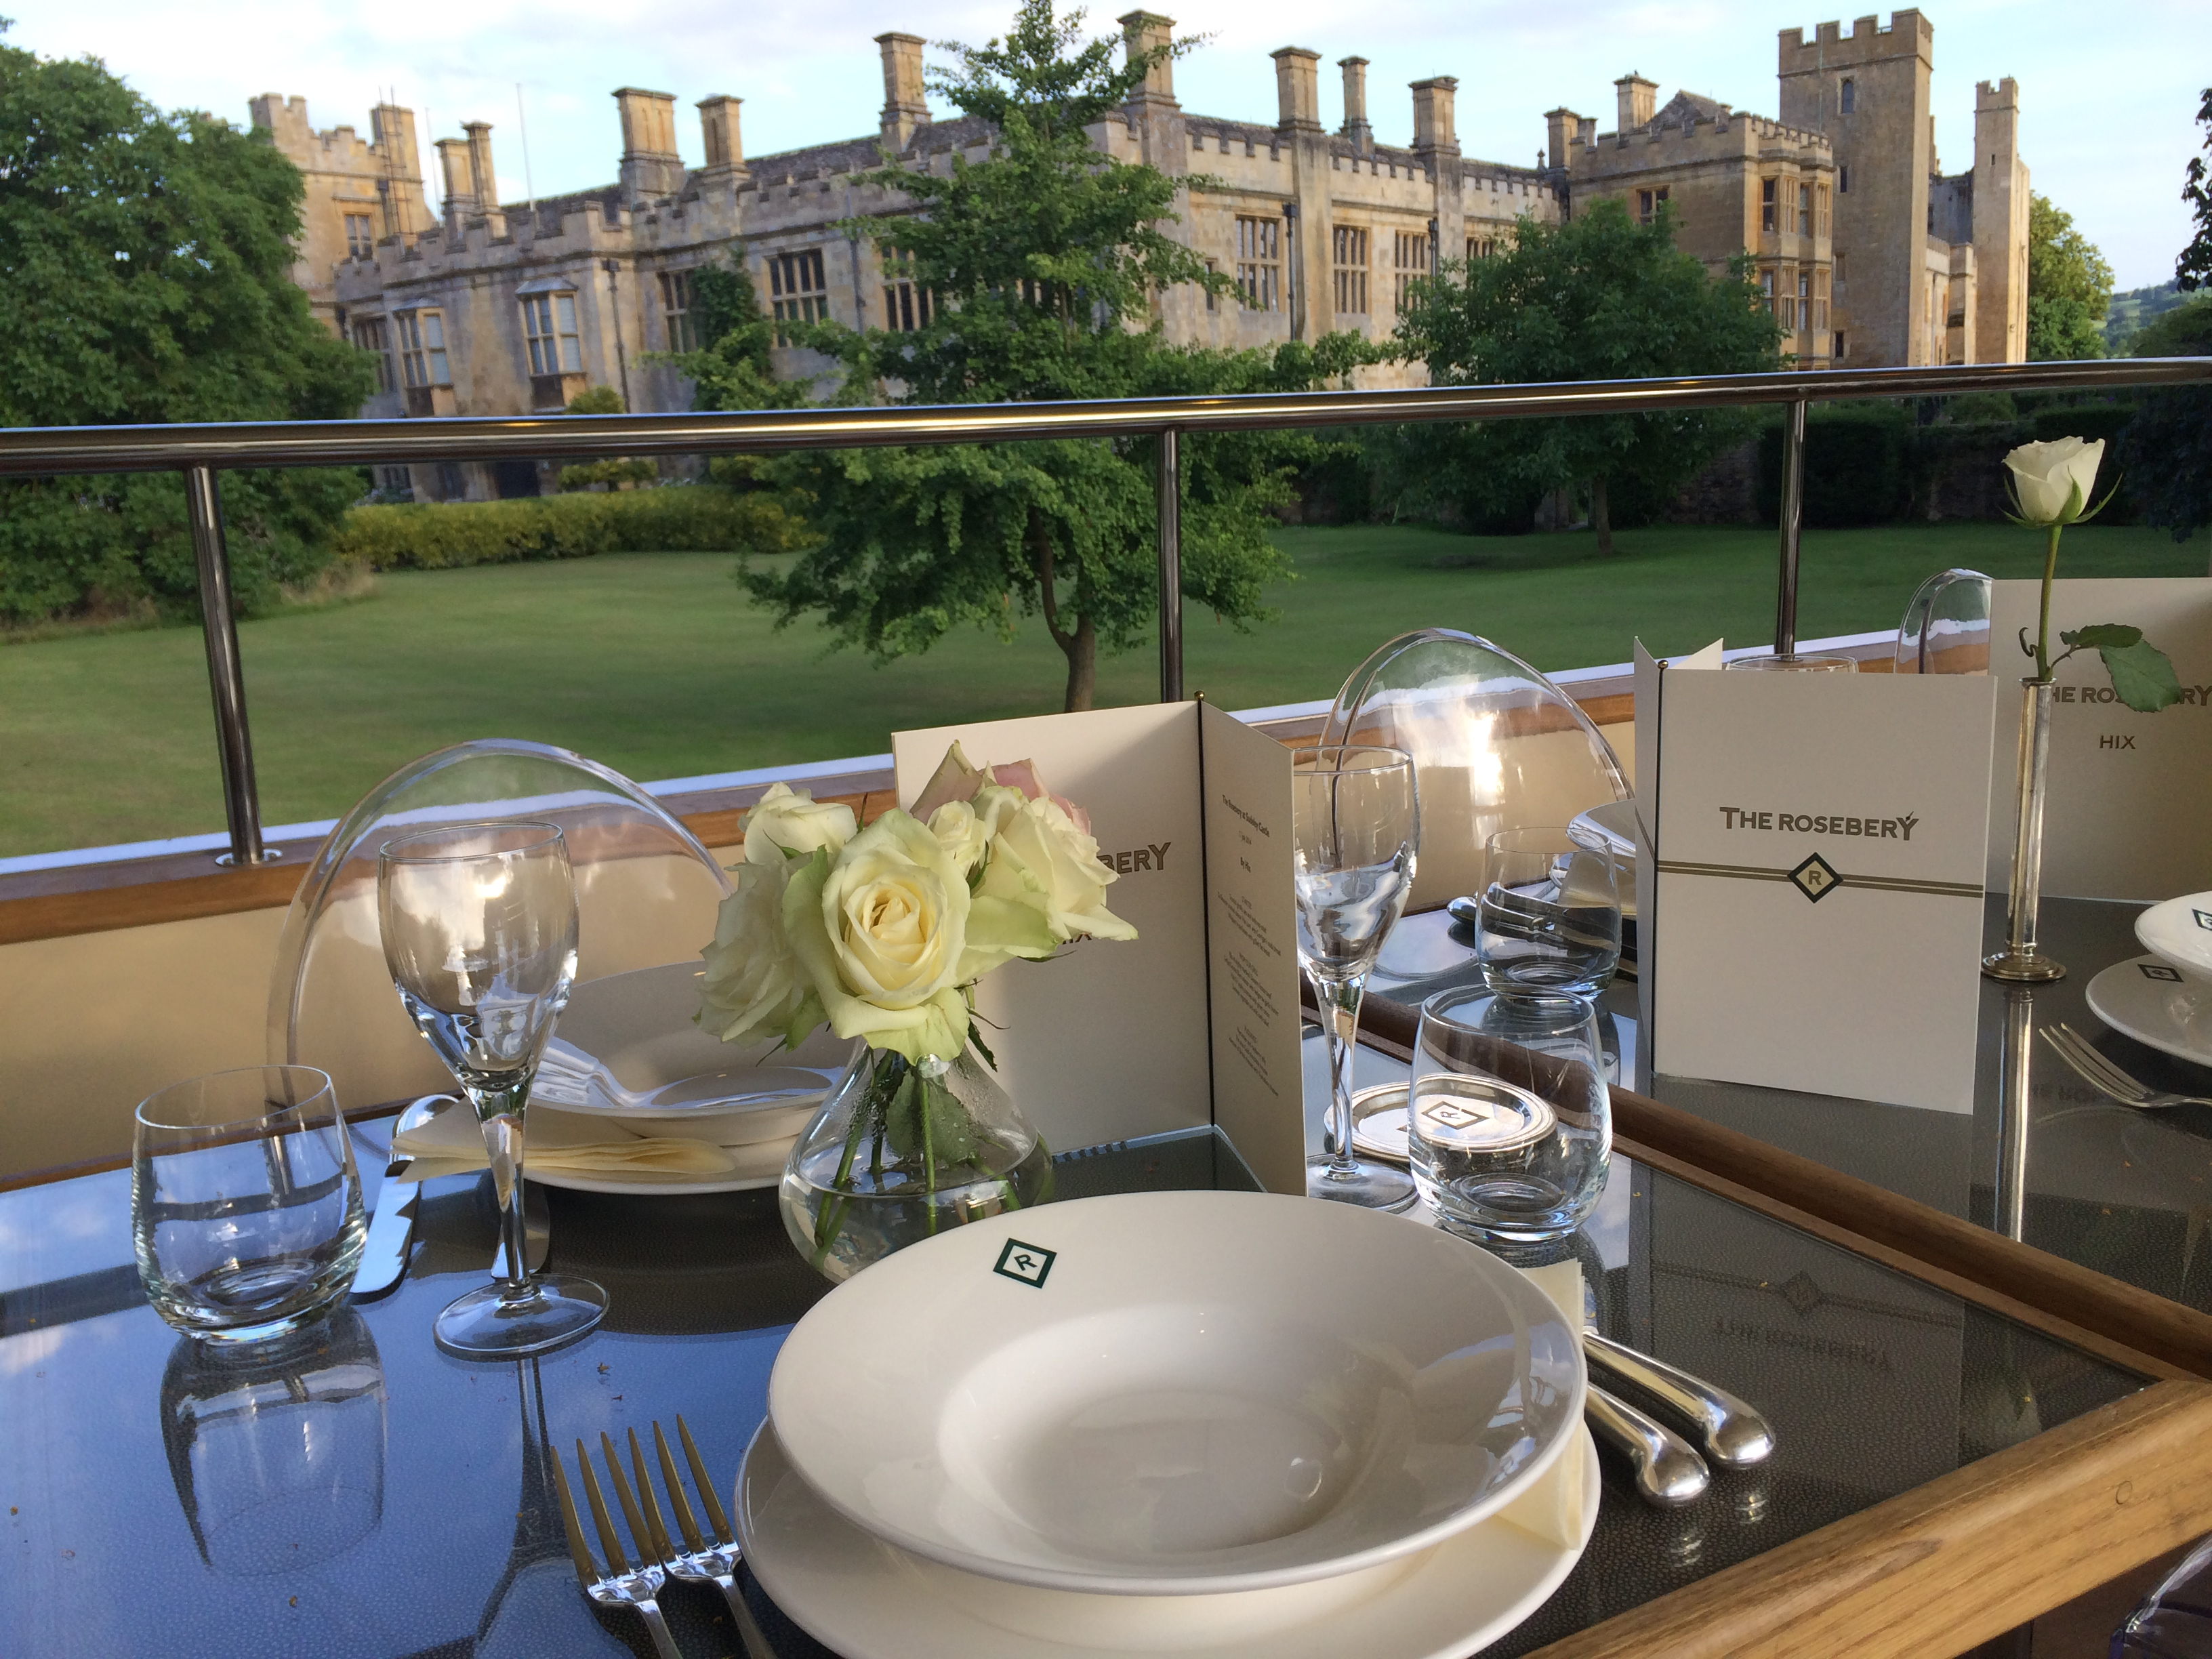 The Rosebery Dinner at Sudeley Castle